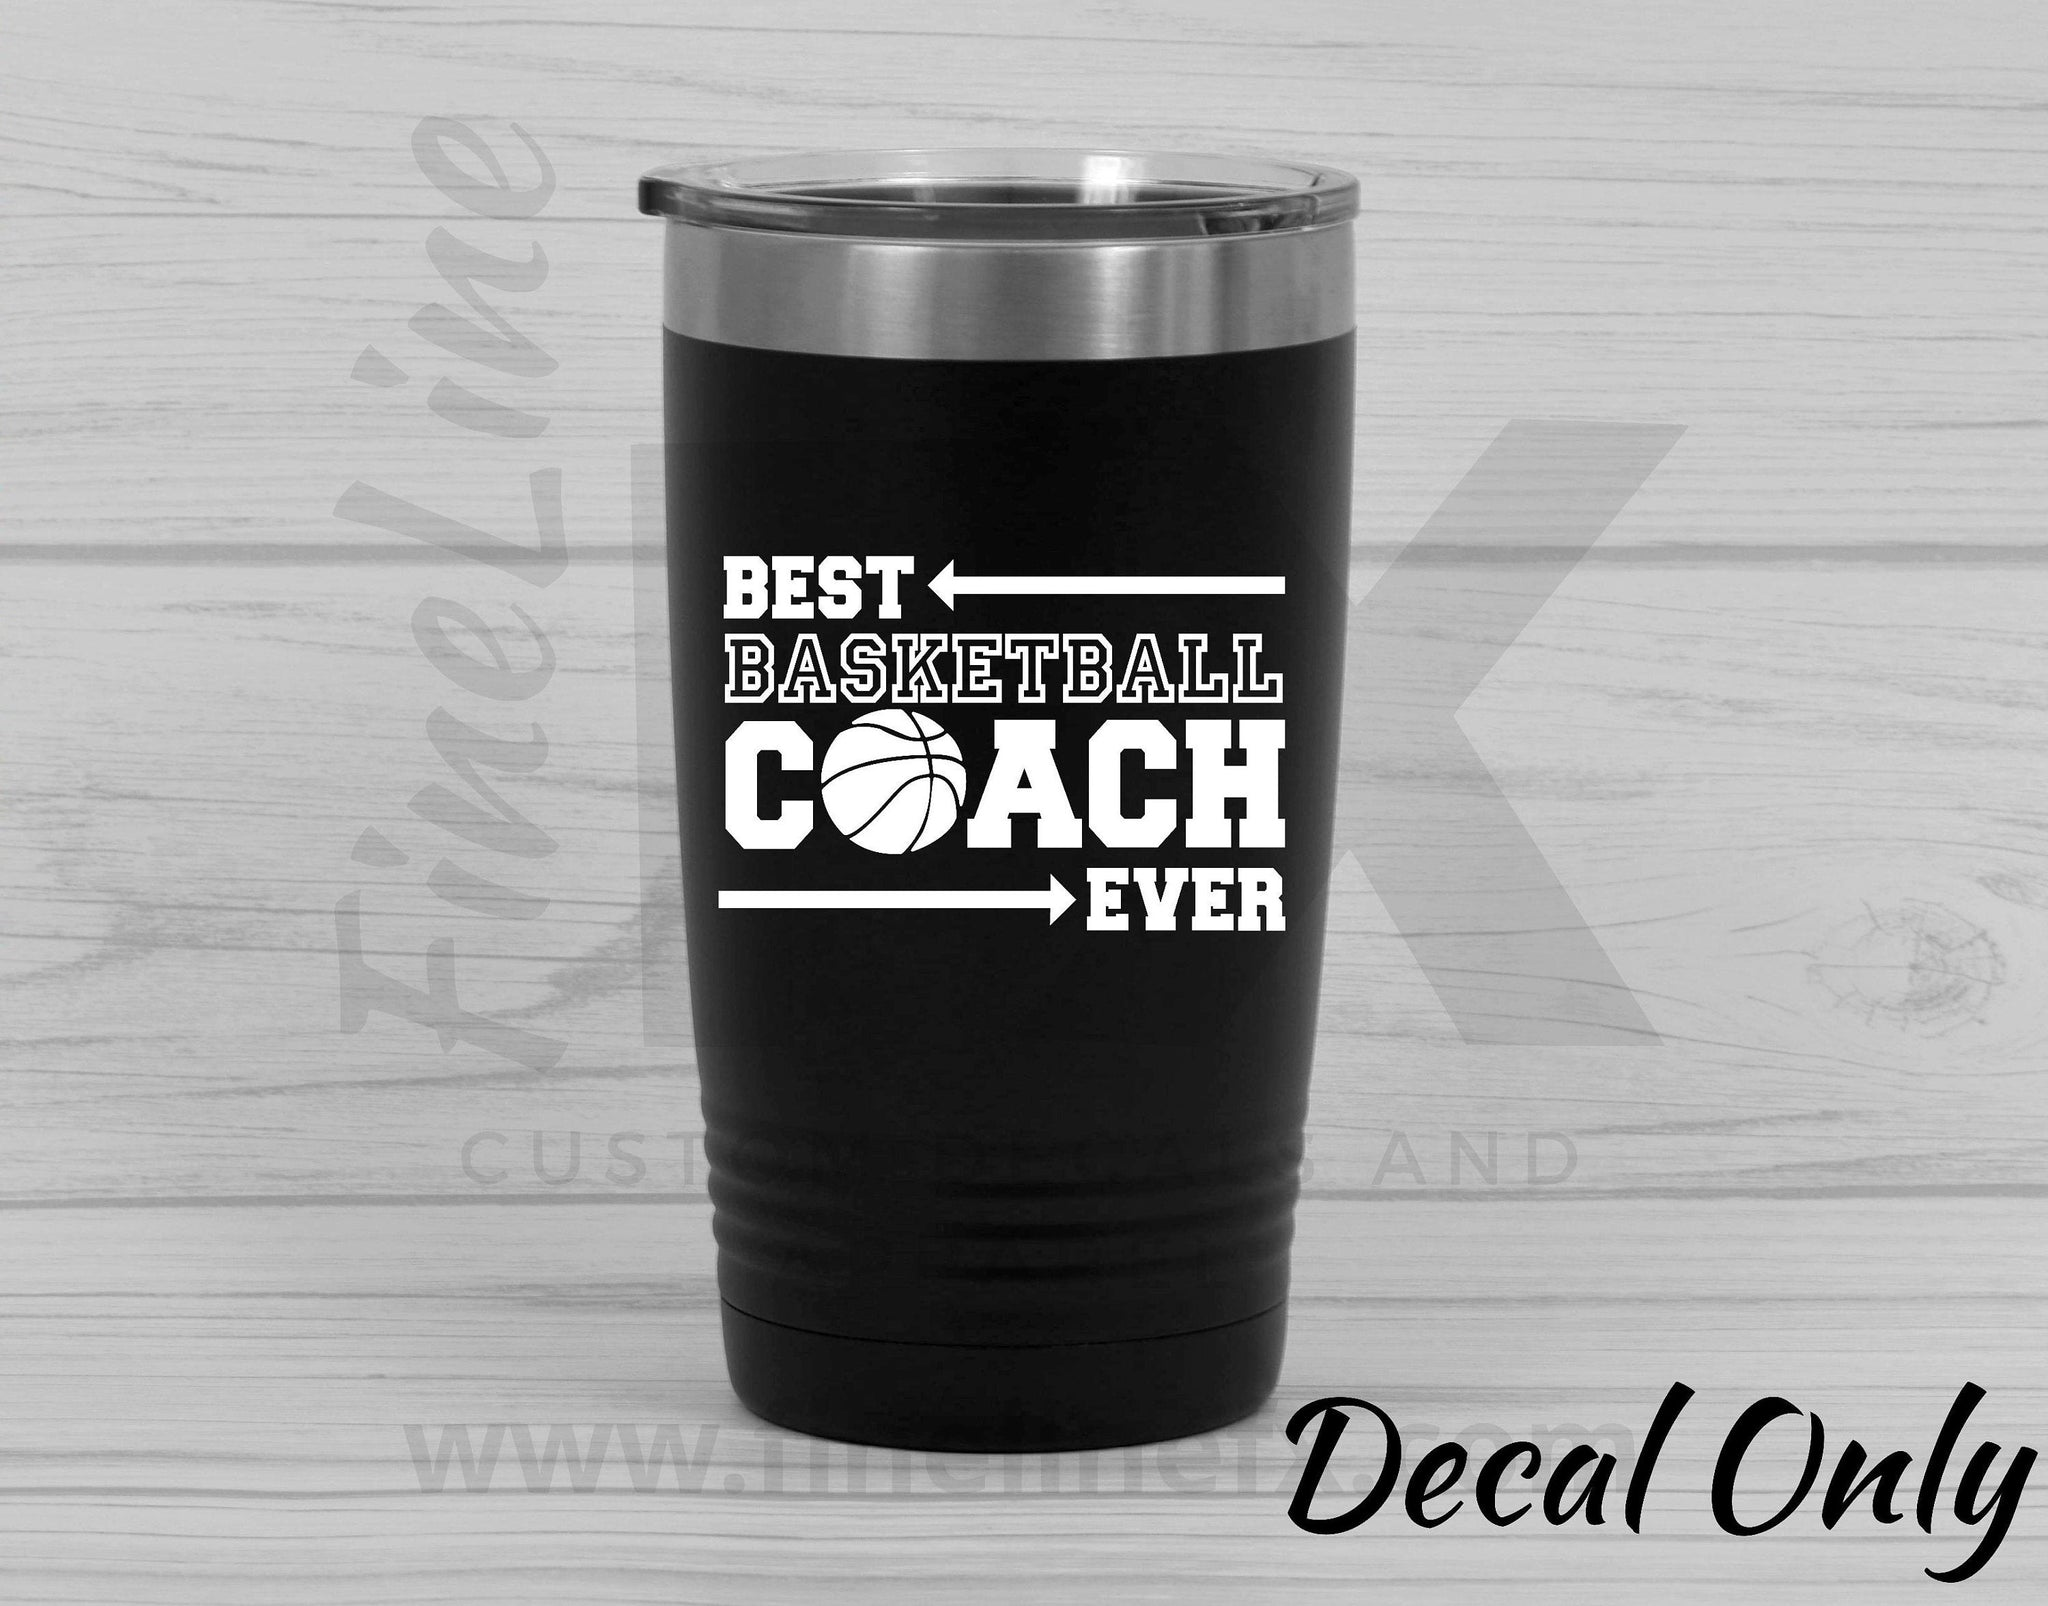 Best Basketball Coach Ever Vinyl Decal Sticker